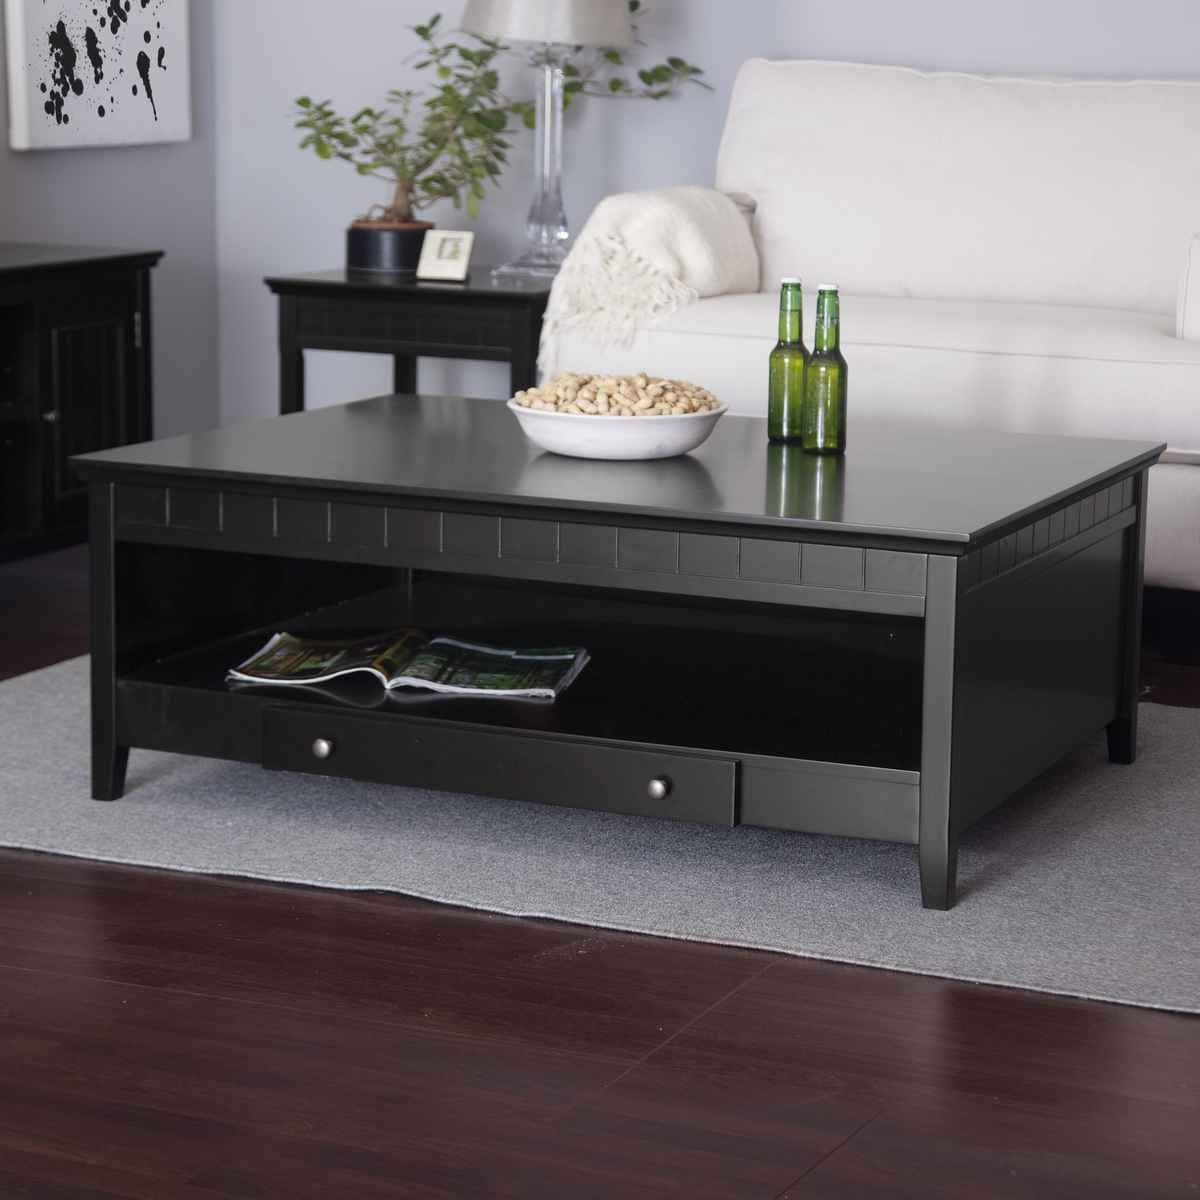 Low Black Coffee Table With Storage | Coffee Tables Decoration with regard to Square Black Coffee Tables (Image 24 of 30)